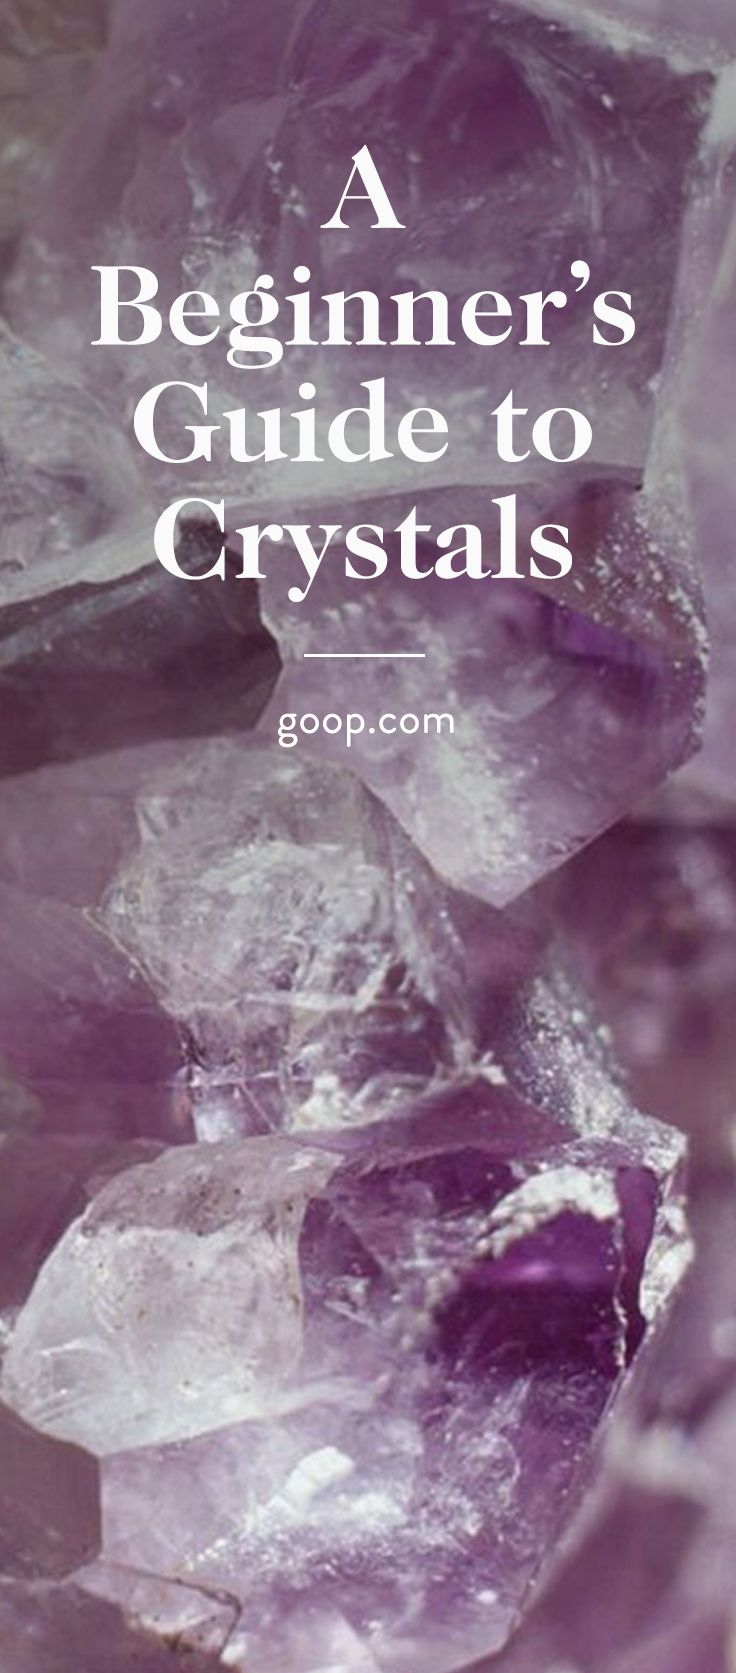 Our guide to the meaning of crystals and how to use them for healing purposes.